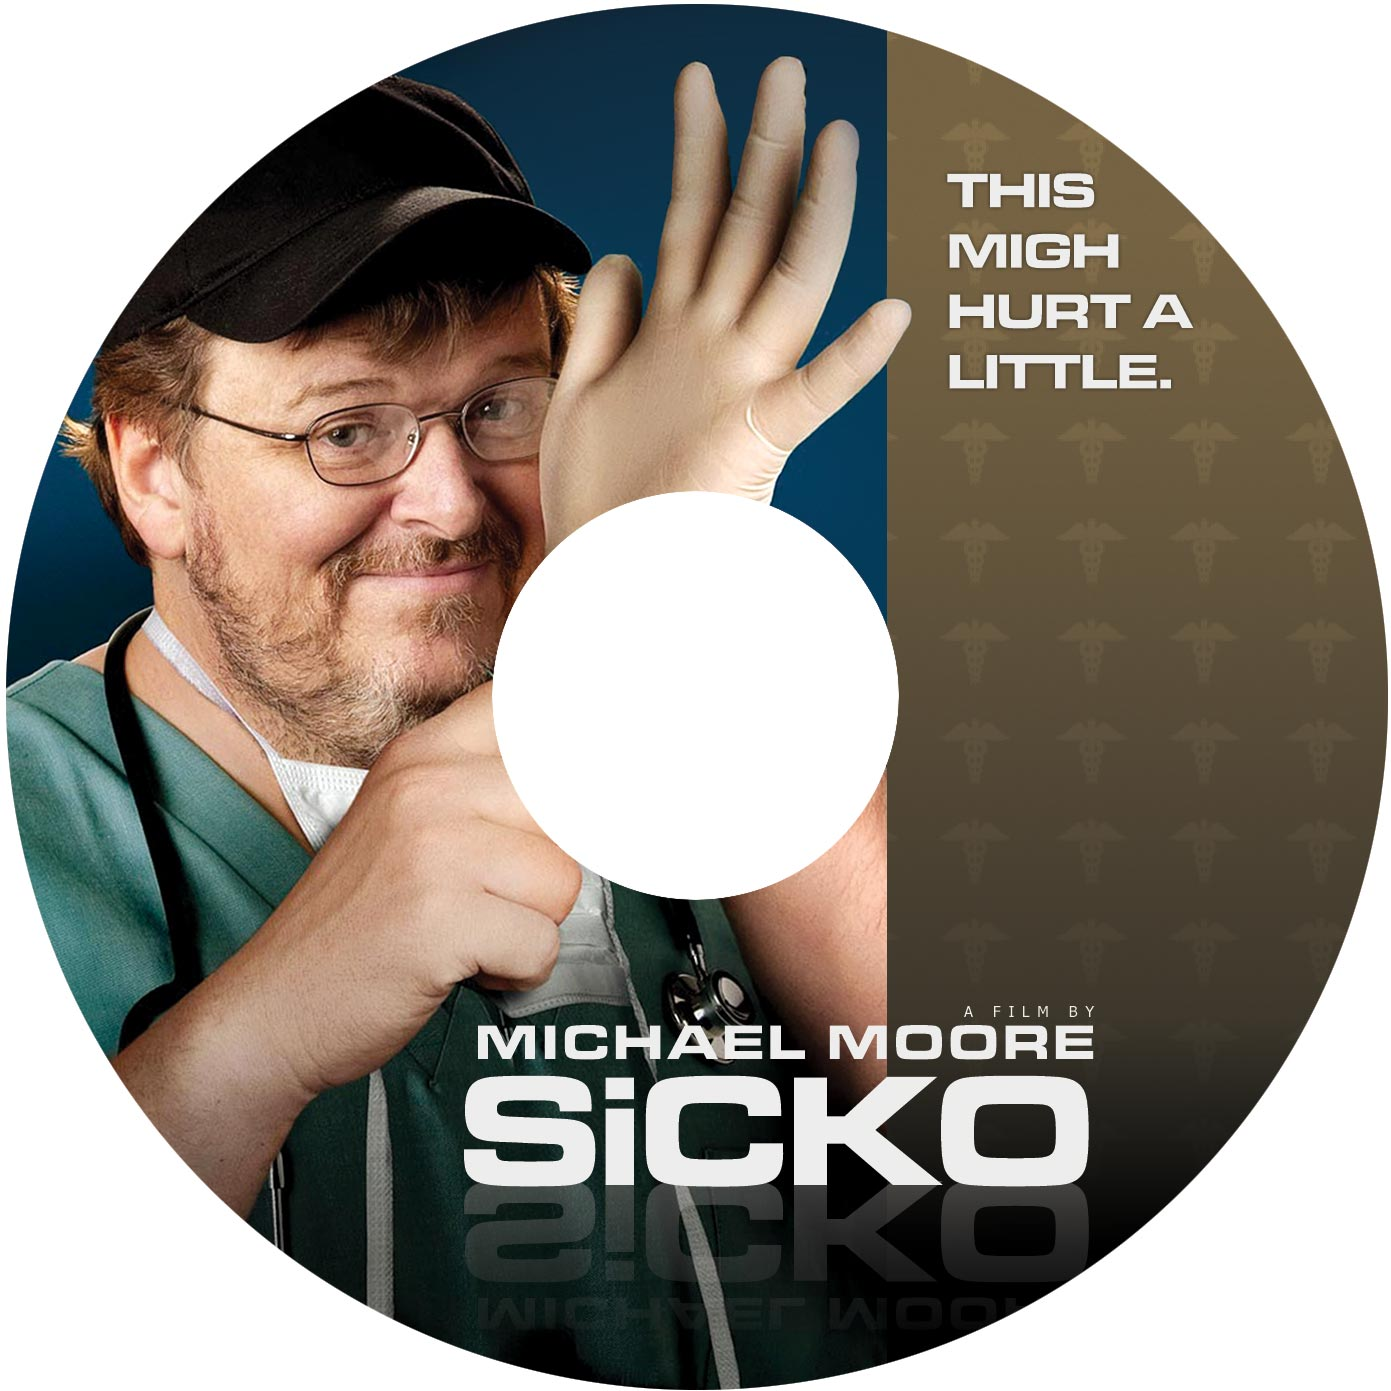 michael moore sicko by lukas on michael moore sicko by lukas238 michael moore sicko by lukas238